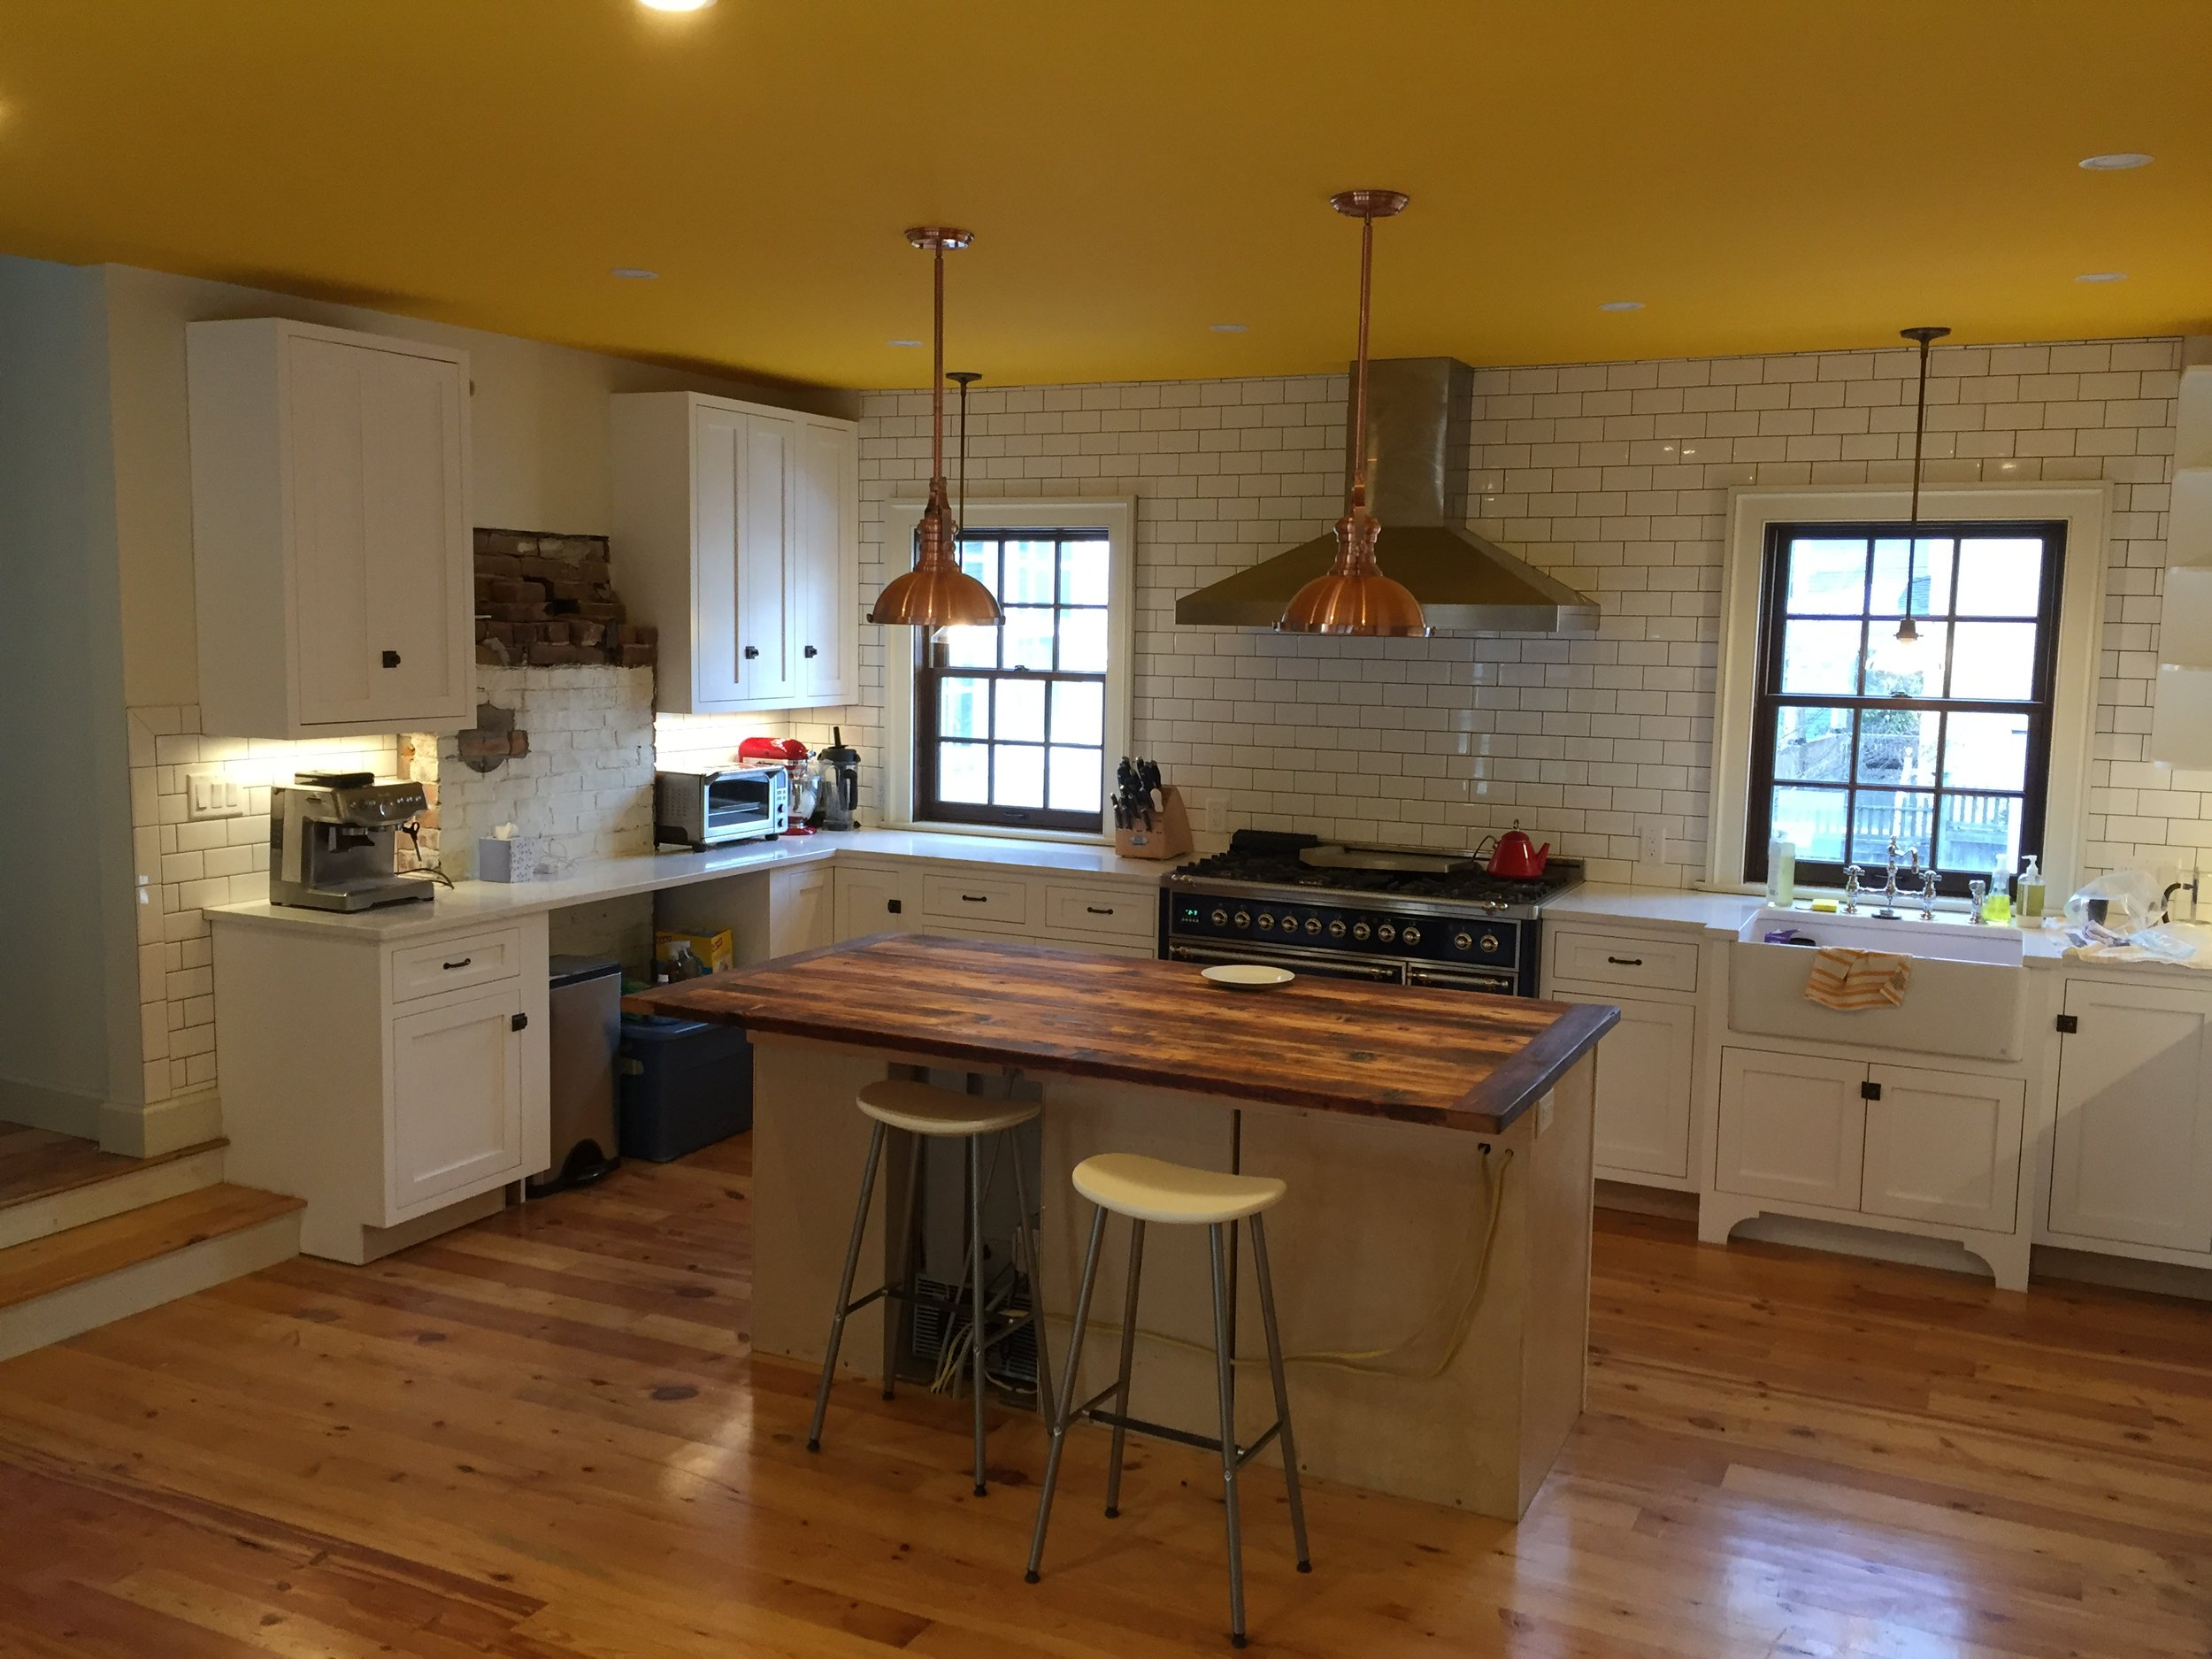 A new kitchen as part of an addition and gut renovation of a mid 1800's home.